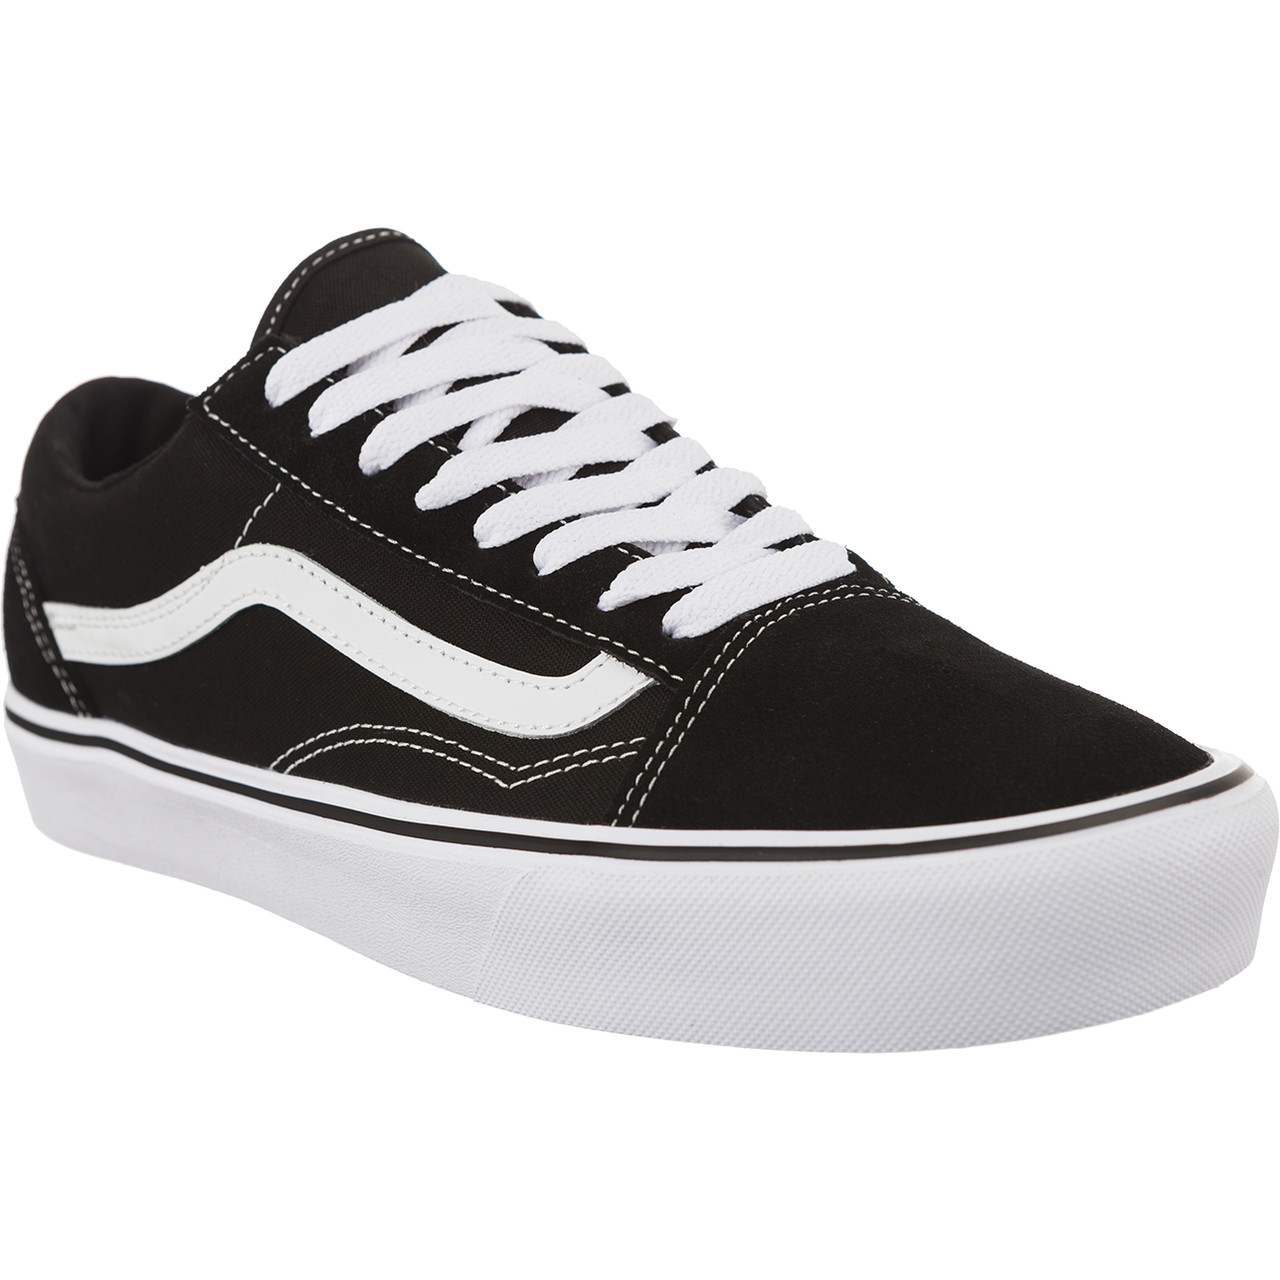 trampki vans old skool lite iju w sklepie. Black Bedroom Furniture Sets. Home Design Ideas